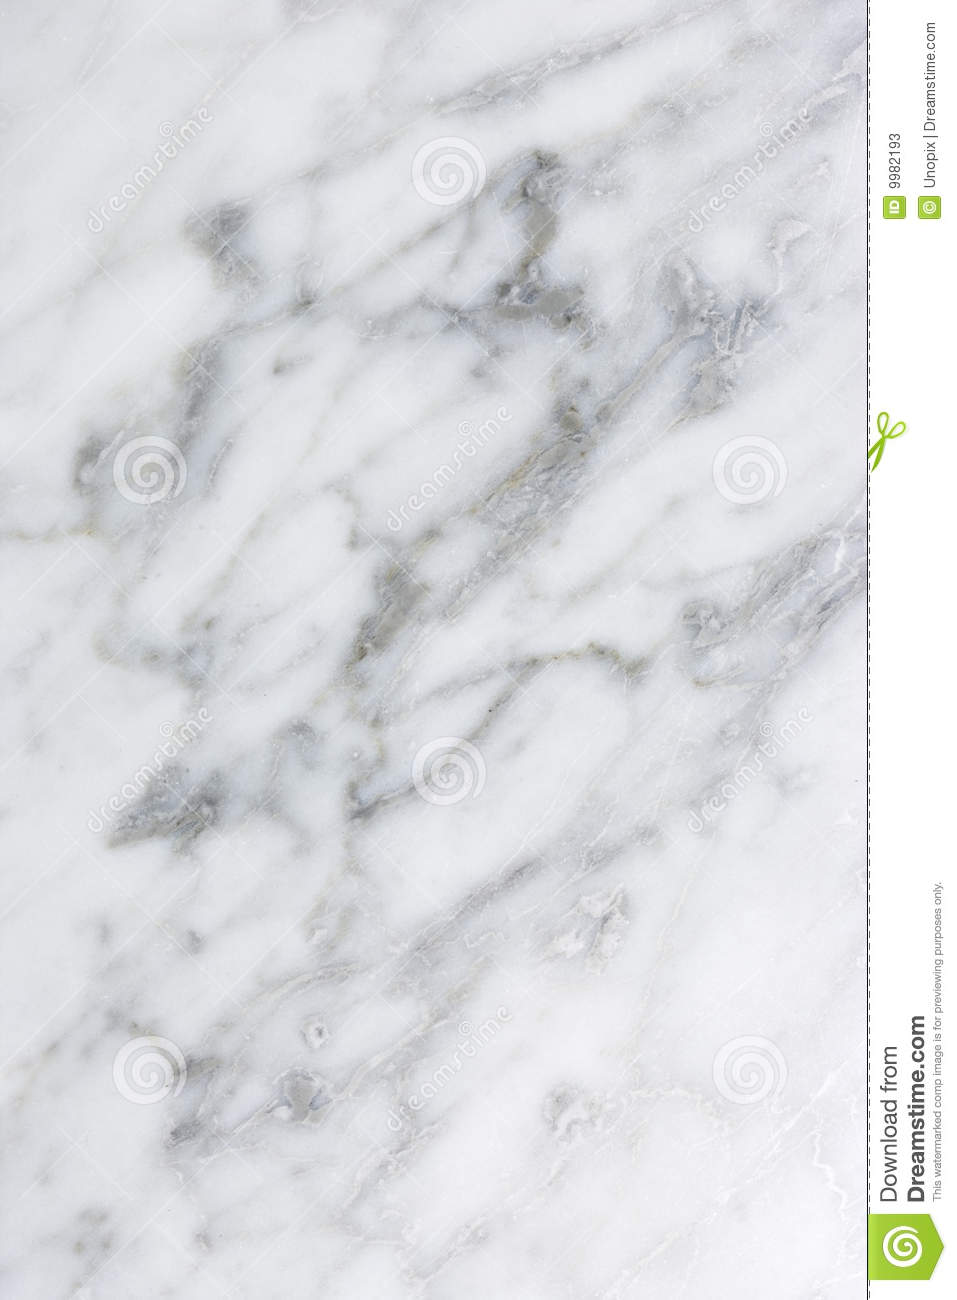 Cute Pintrest Quote Wallpapers Marble Background Texture Stock Image Image Of White